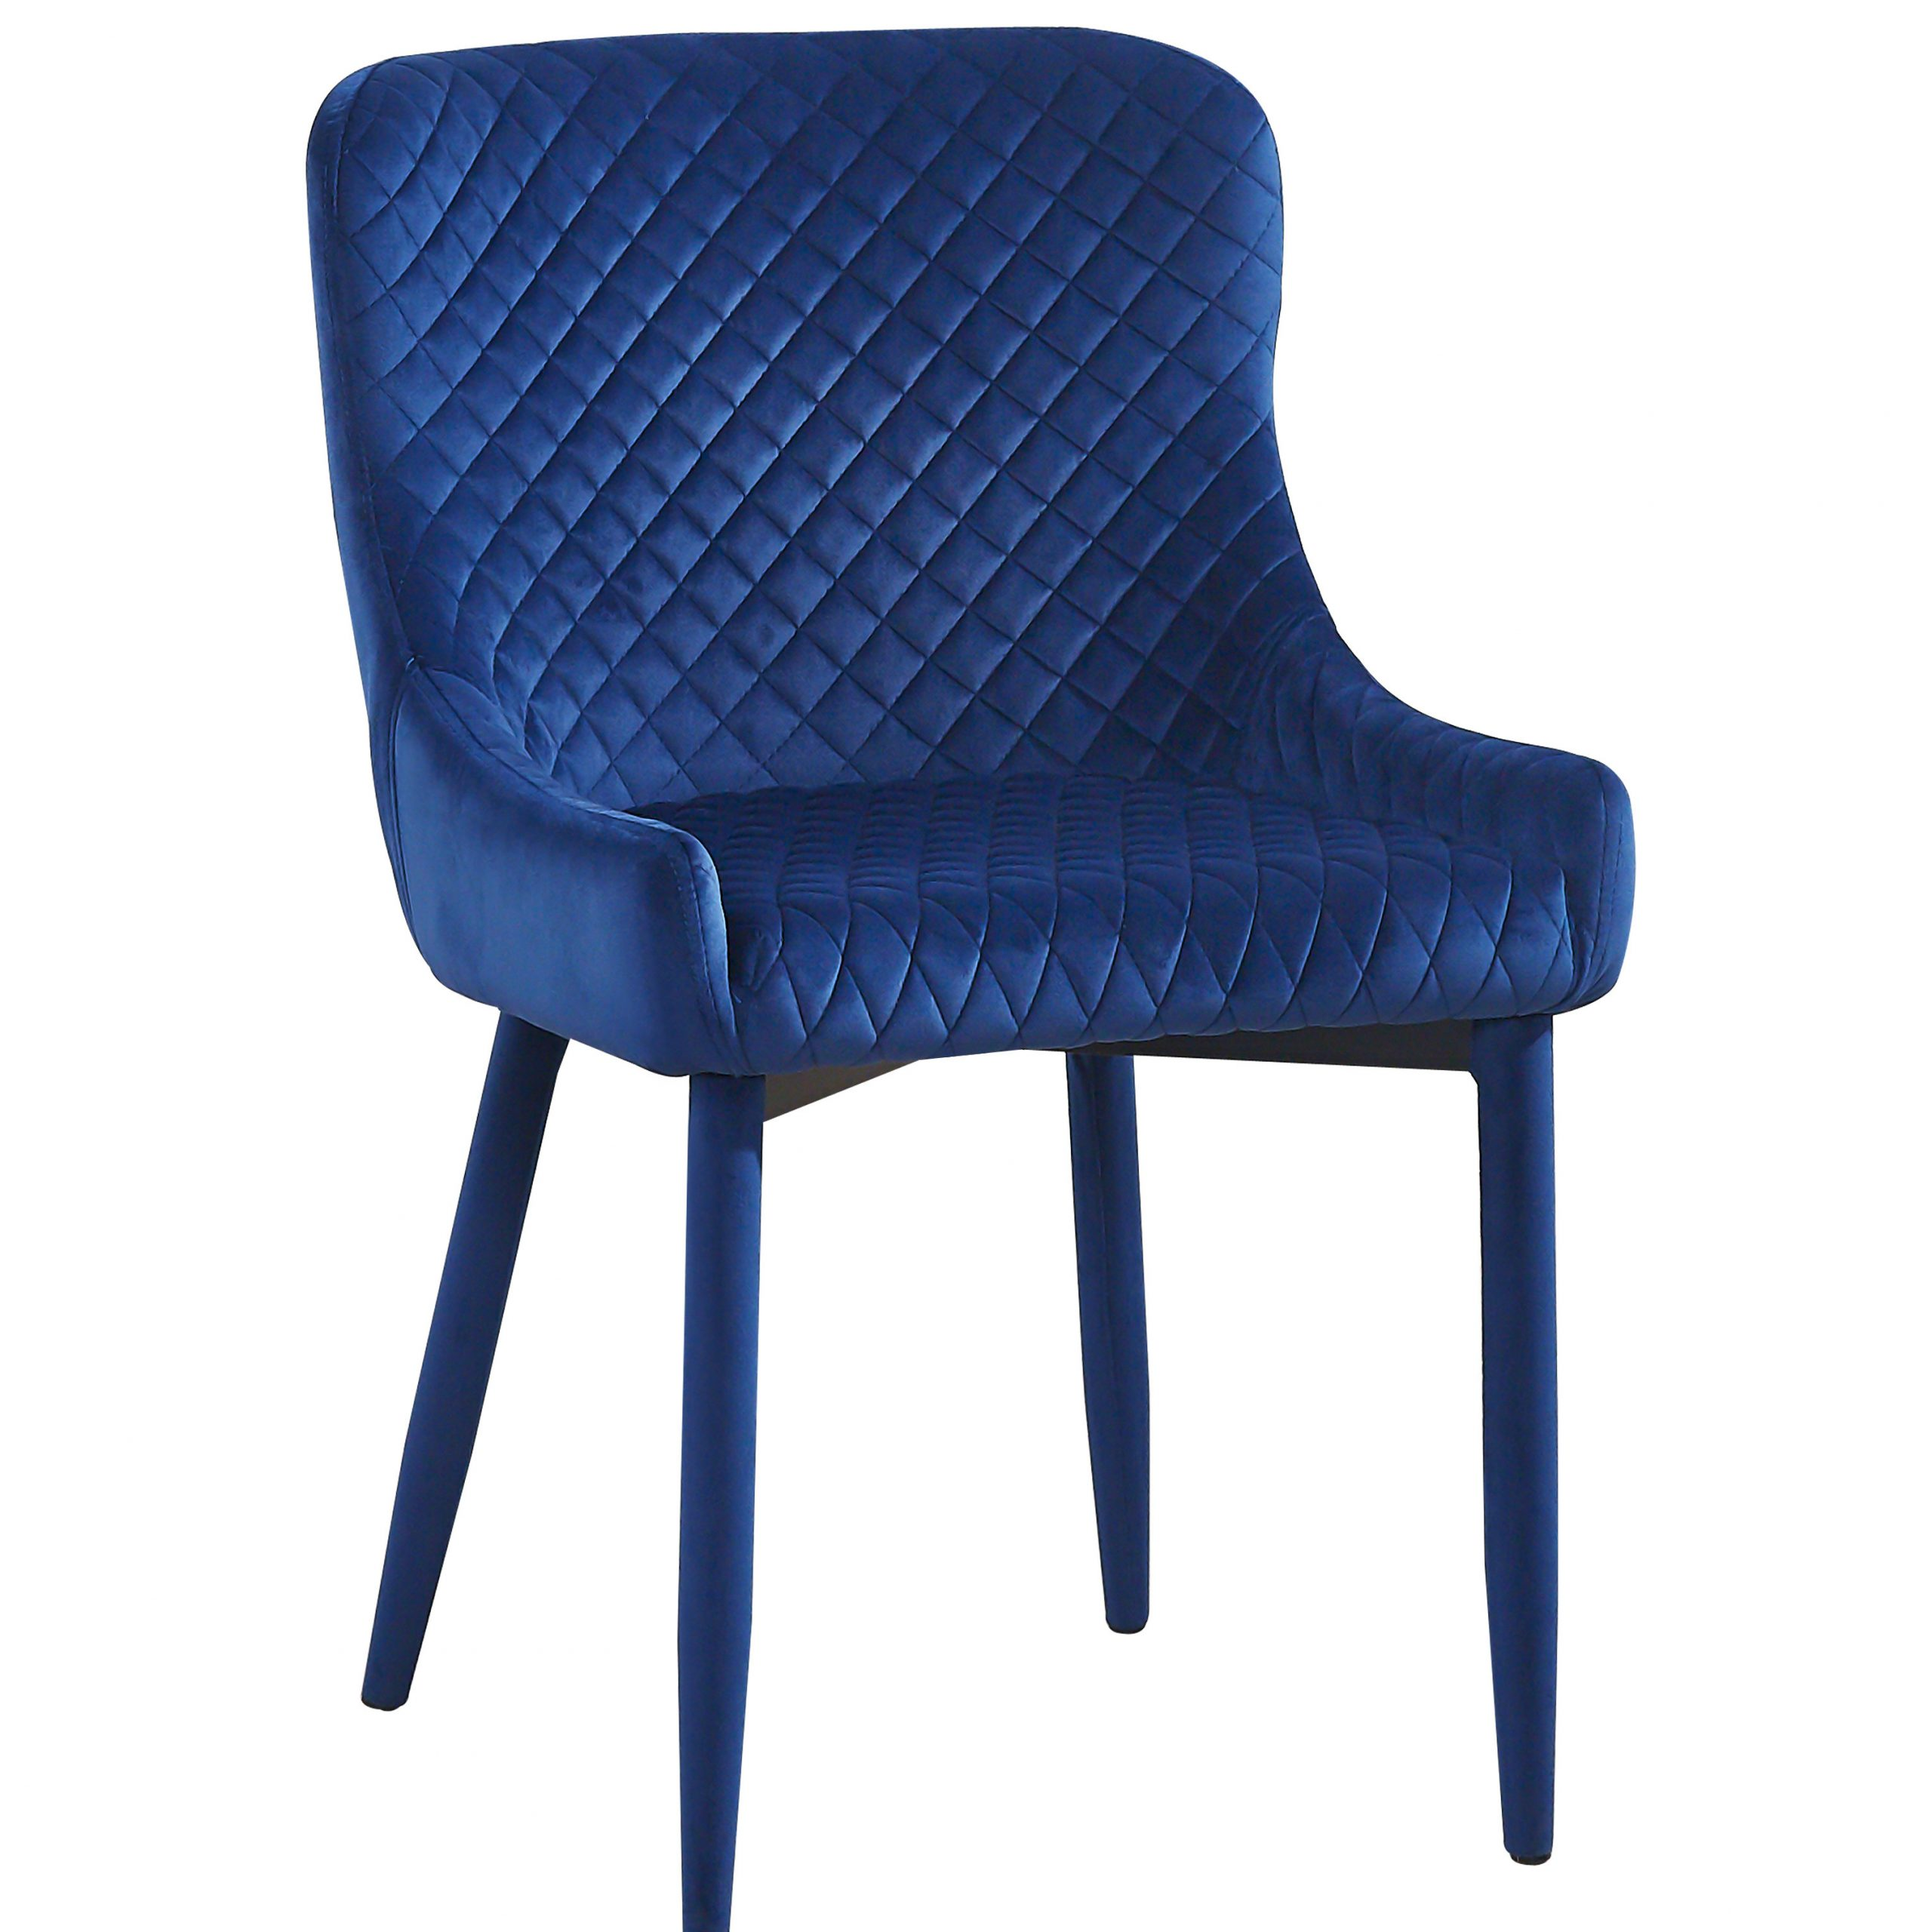 Draco Navy Velvet Chair With Regard To Draco Armchairs (View 5 of 15)